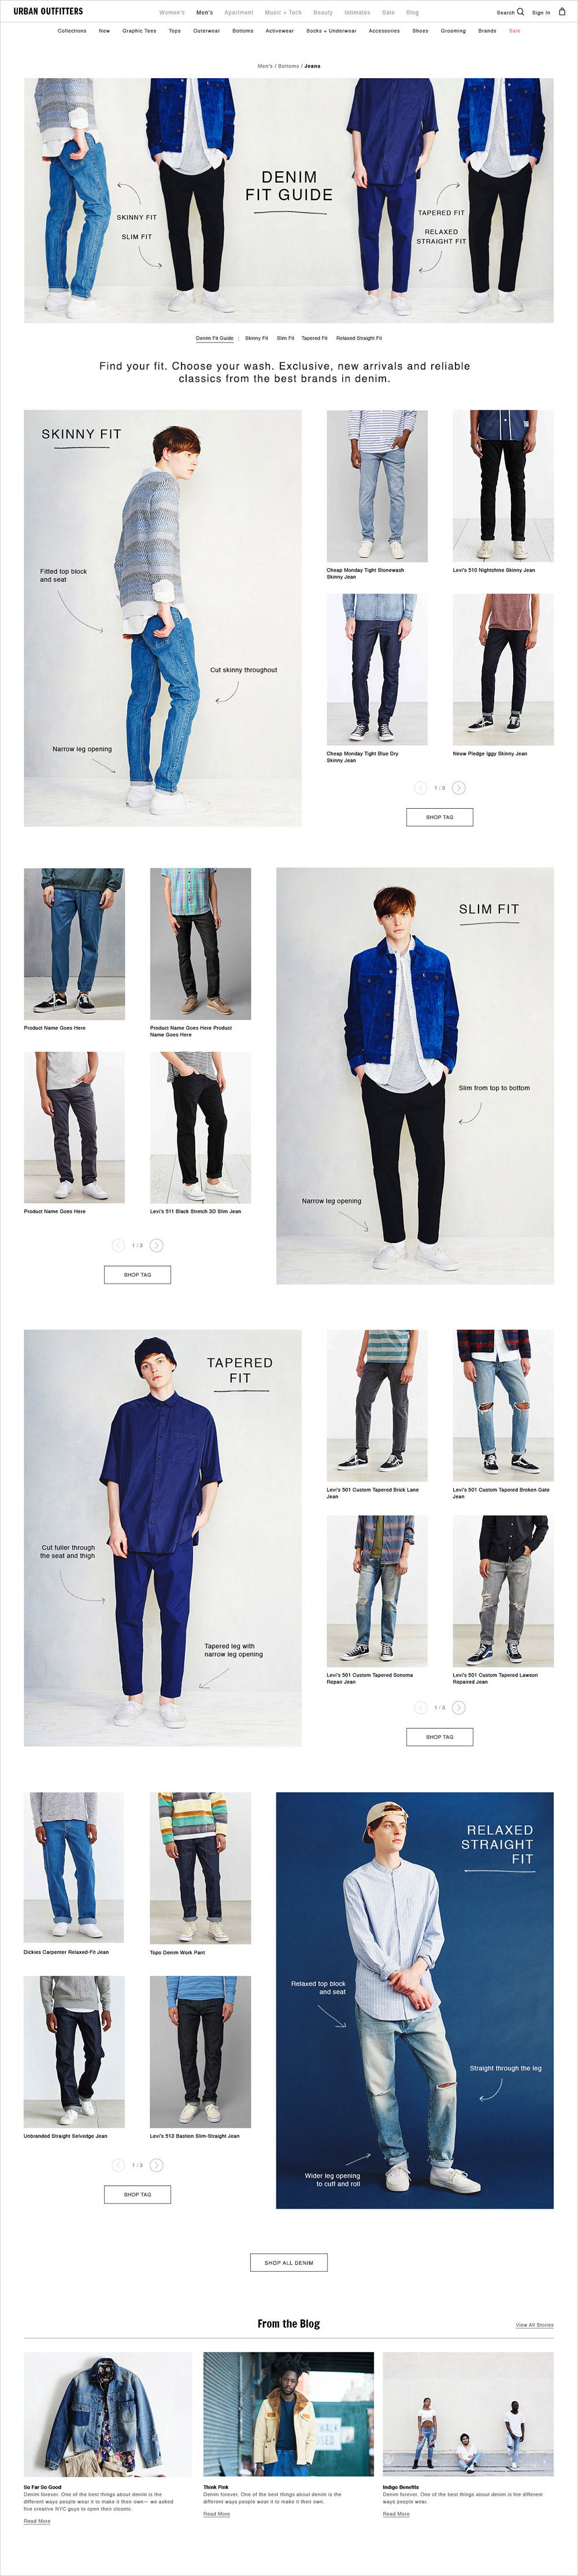 Mens_Denim_Guide_SpecialityShop